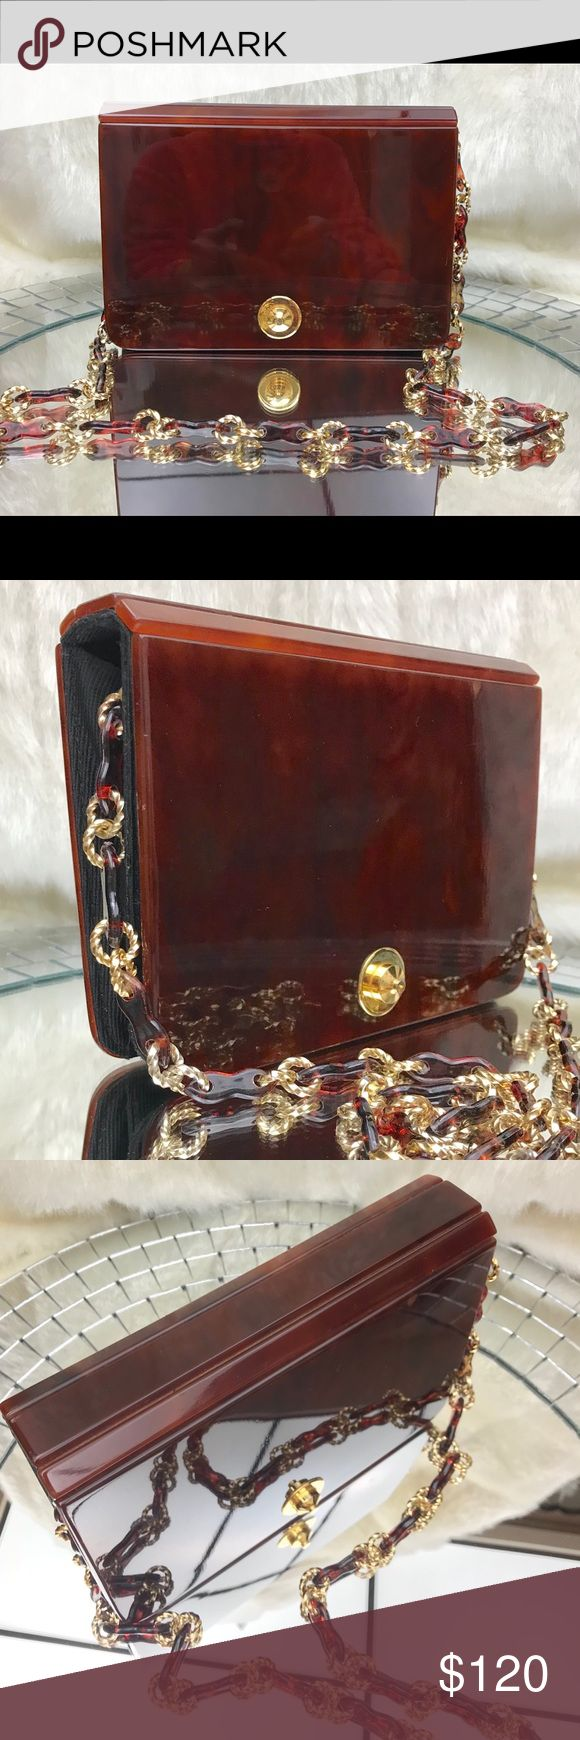 🎁🎄MCM Tano of Madrid Lucite Clutch Shoulder Bag 🎁 Gift Yourself with this RARE, Magnificent and stunning lucite bag in deep amber tortoise shell finish. Mid century modern. Beveled top hing. Accordion style interior.  Excellent vintage condition. Gold tone hardware on front with Lucite and gold tone removable chain. Snap front closure.  Inner zipper pull is rough feeling and exterior finish has very minor scratches that can be seen up close if you're looking for them. Priced accordingly…